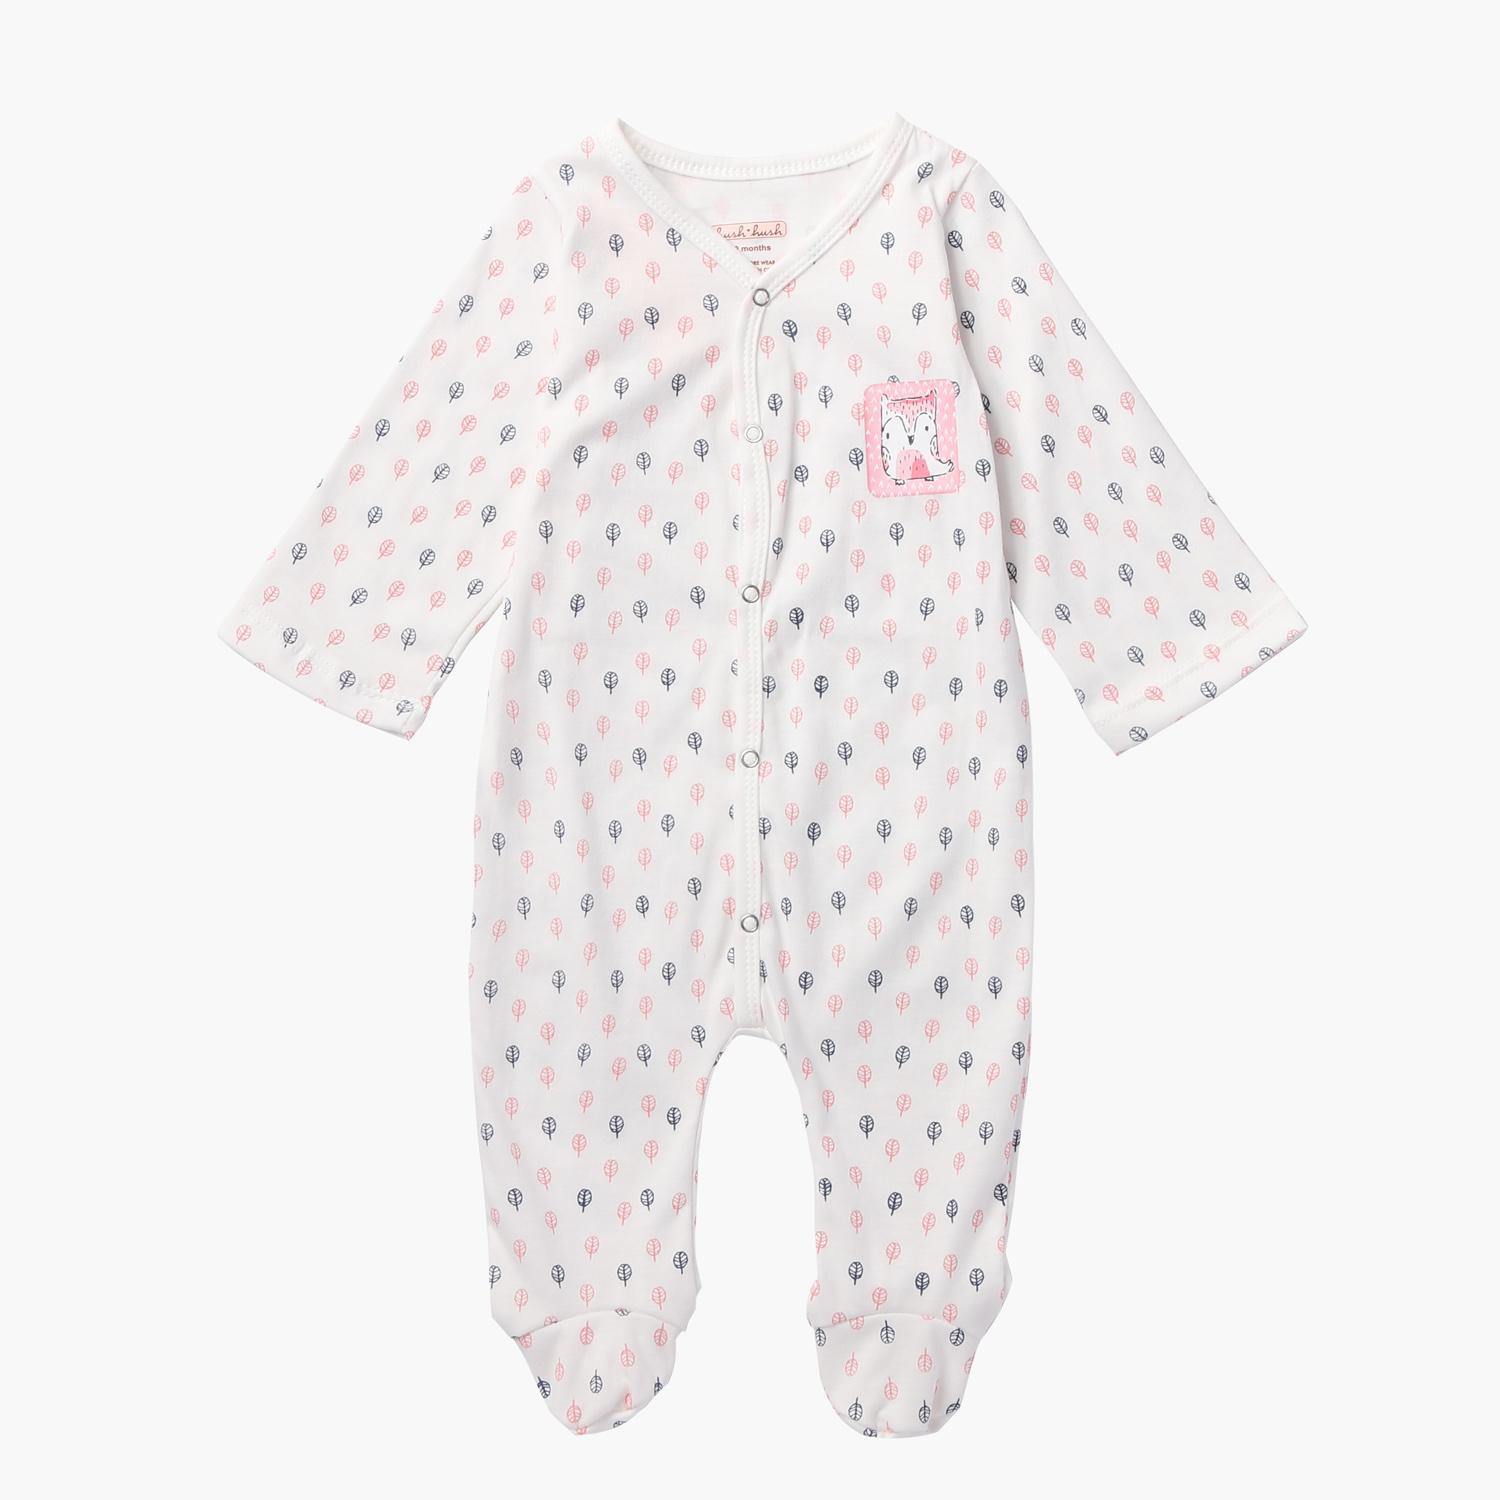 Baby Clothes for sale - Baby Clothing online brands, prices ...